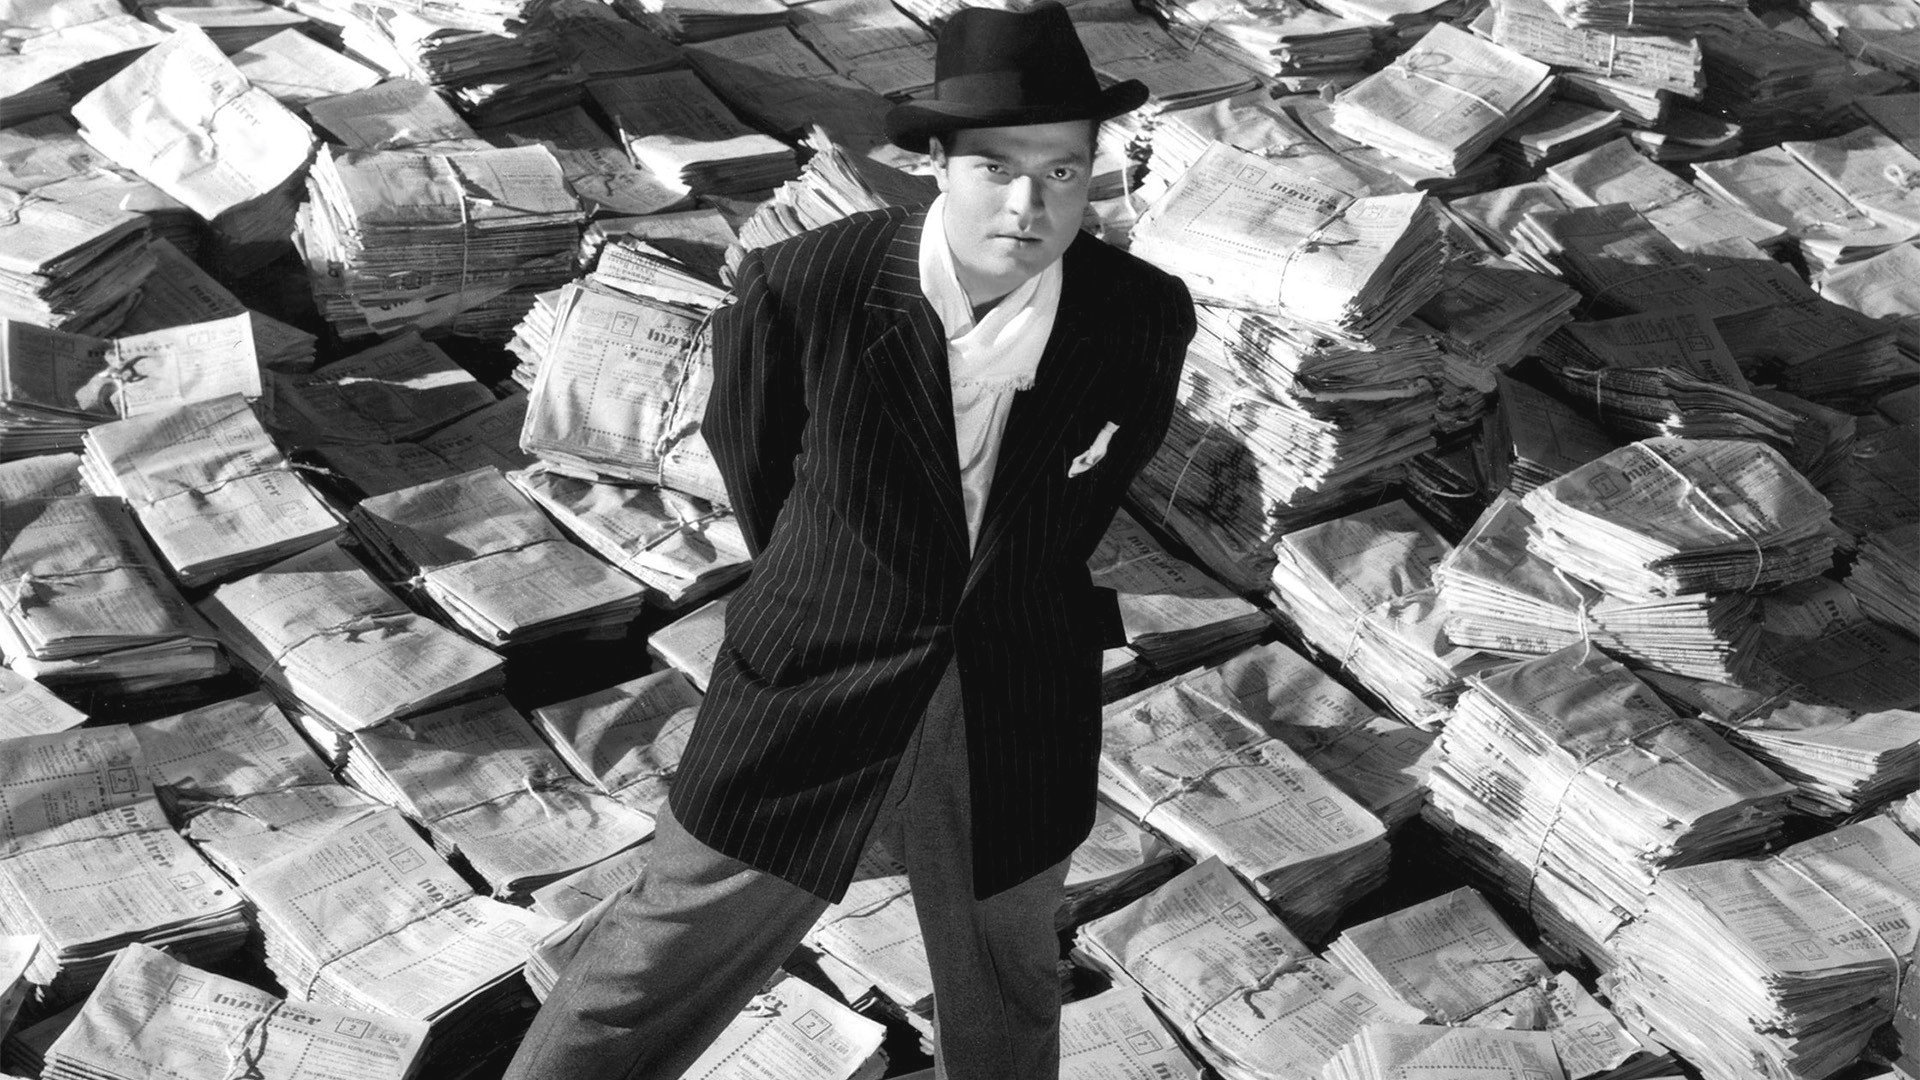 Citizen Kane (Orson Welles, 1941)